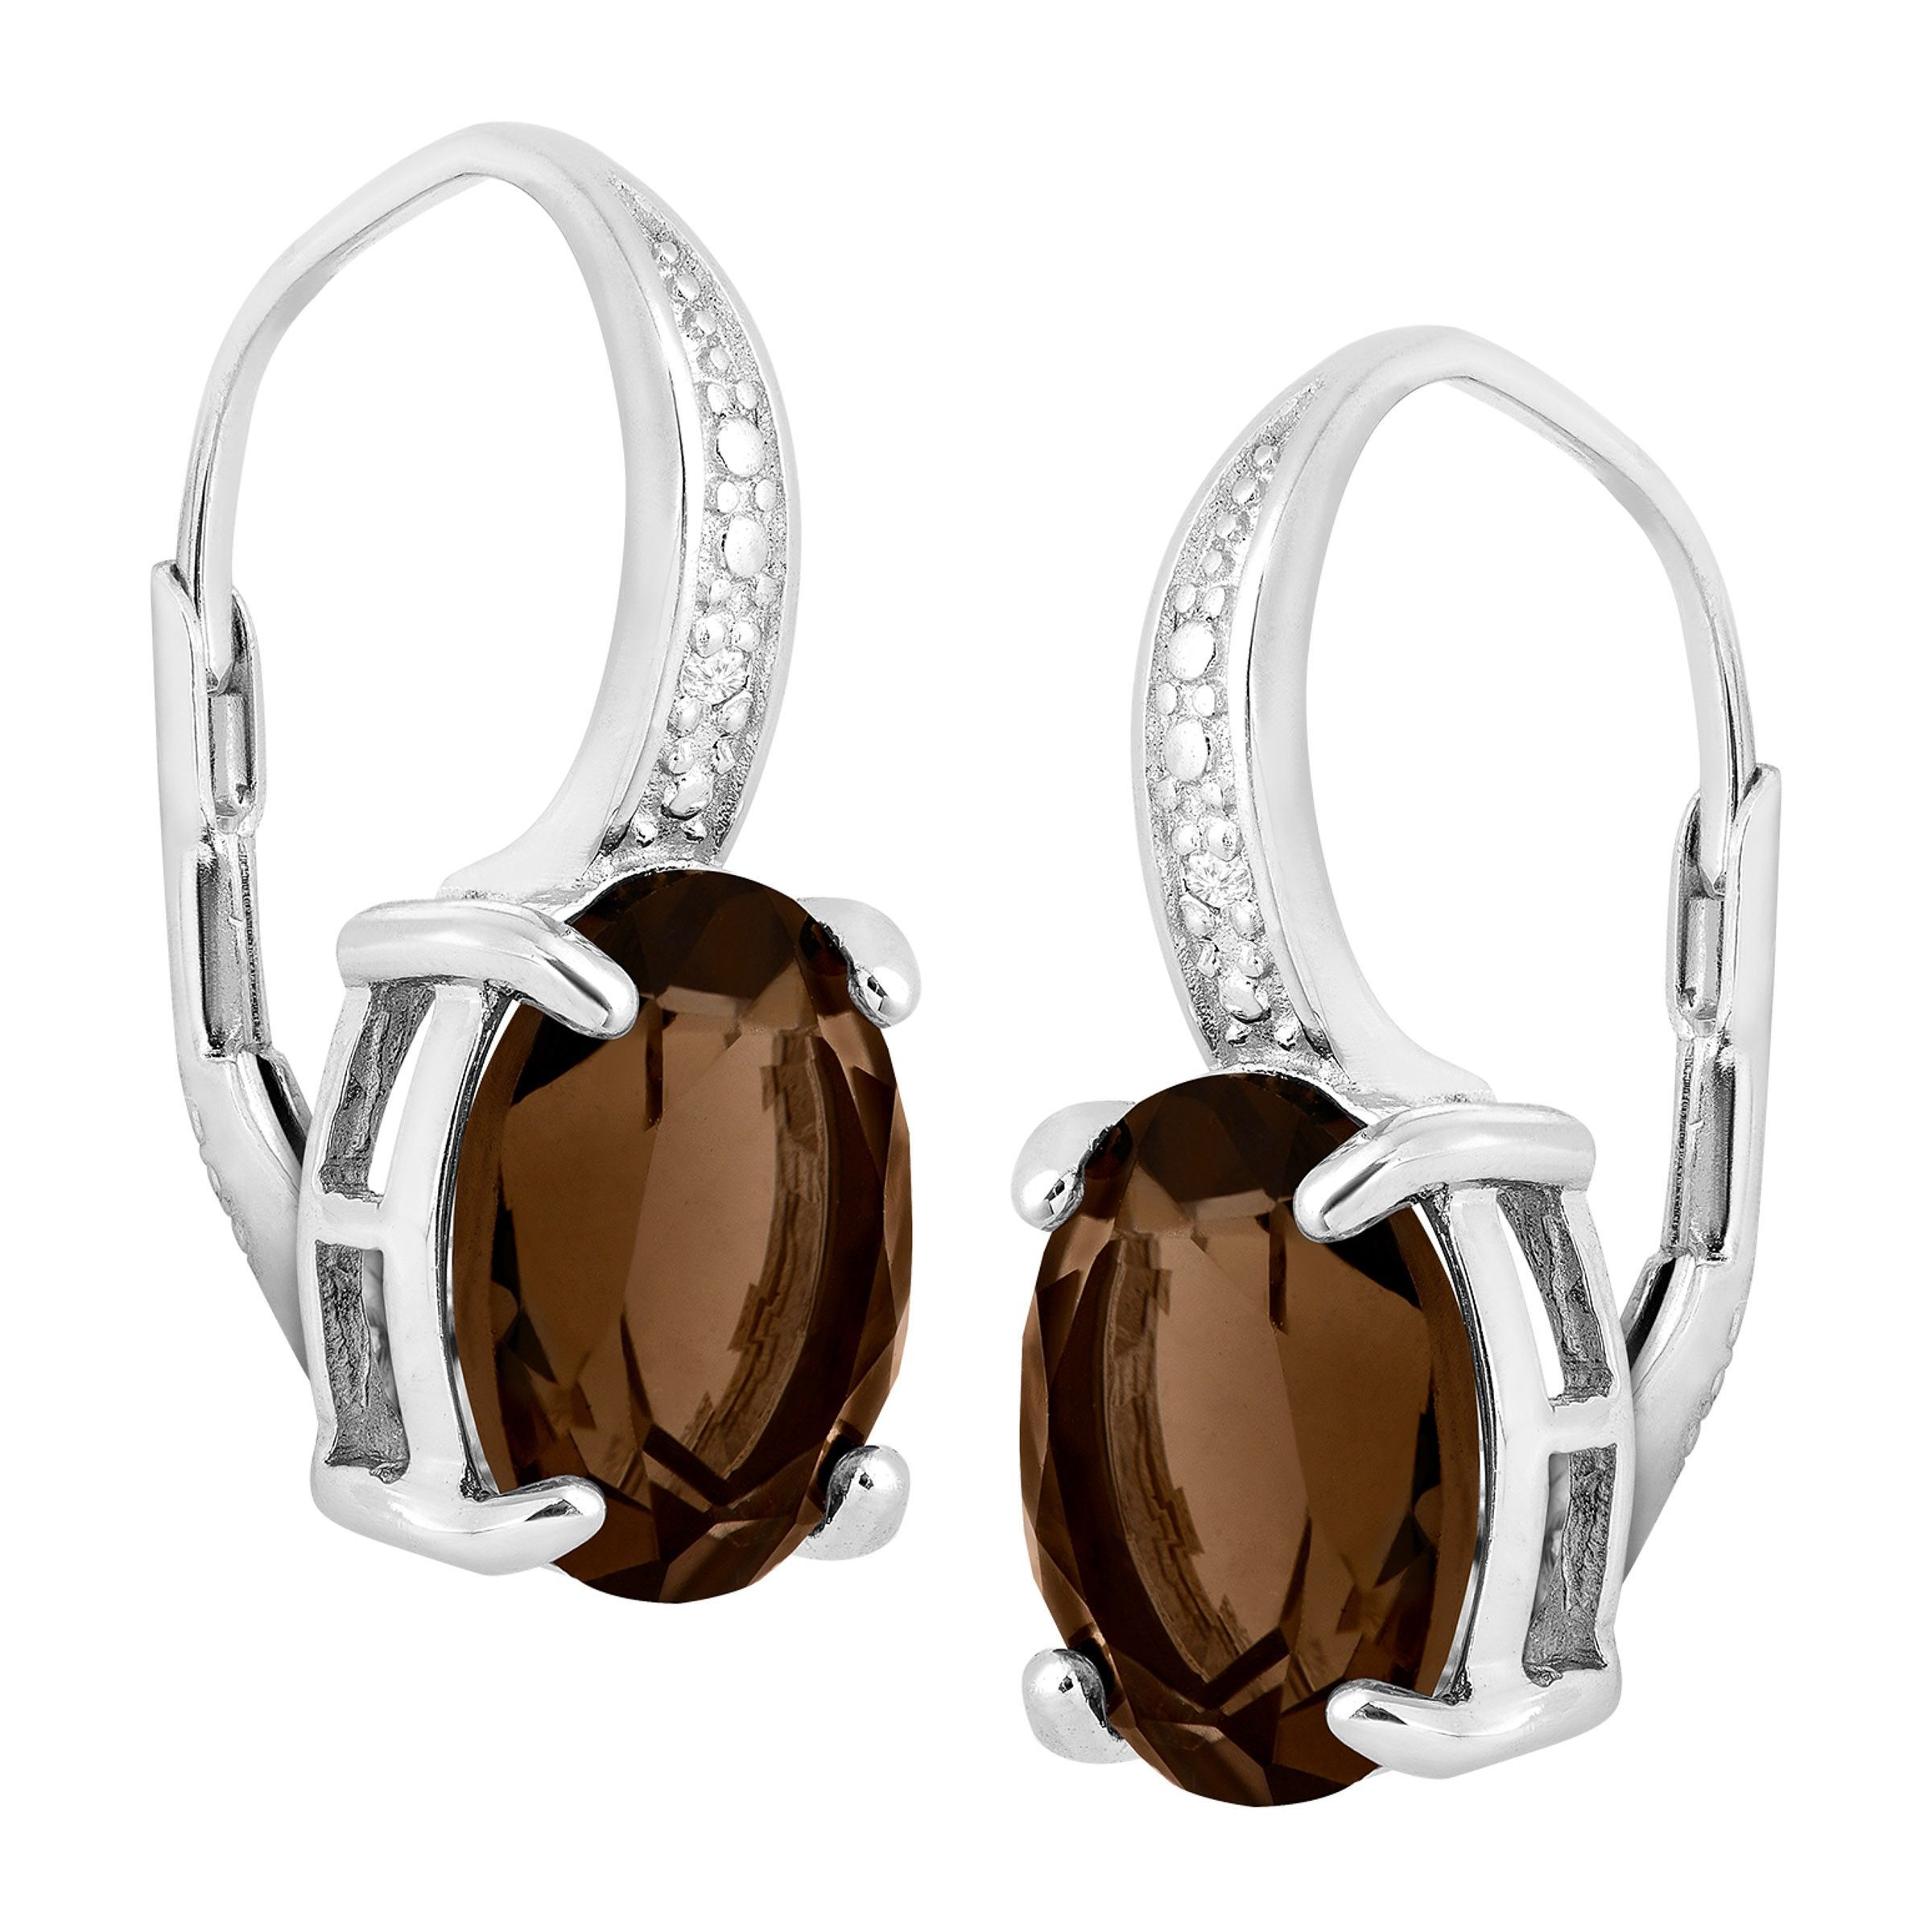 Natural-Gemstone-Drop-Earrings-with-Diamonds-in-Sterling-Silver thumbnail 36